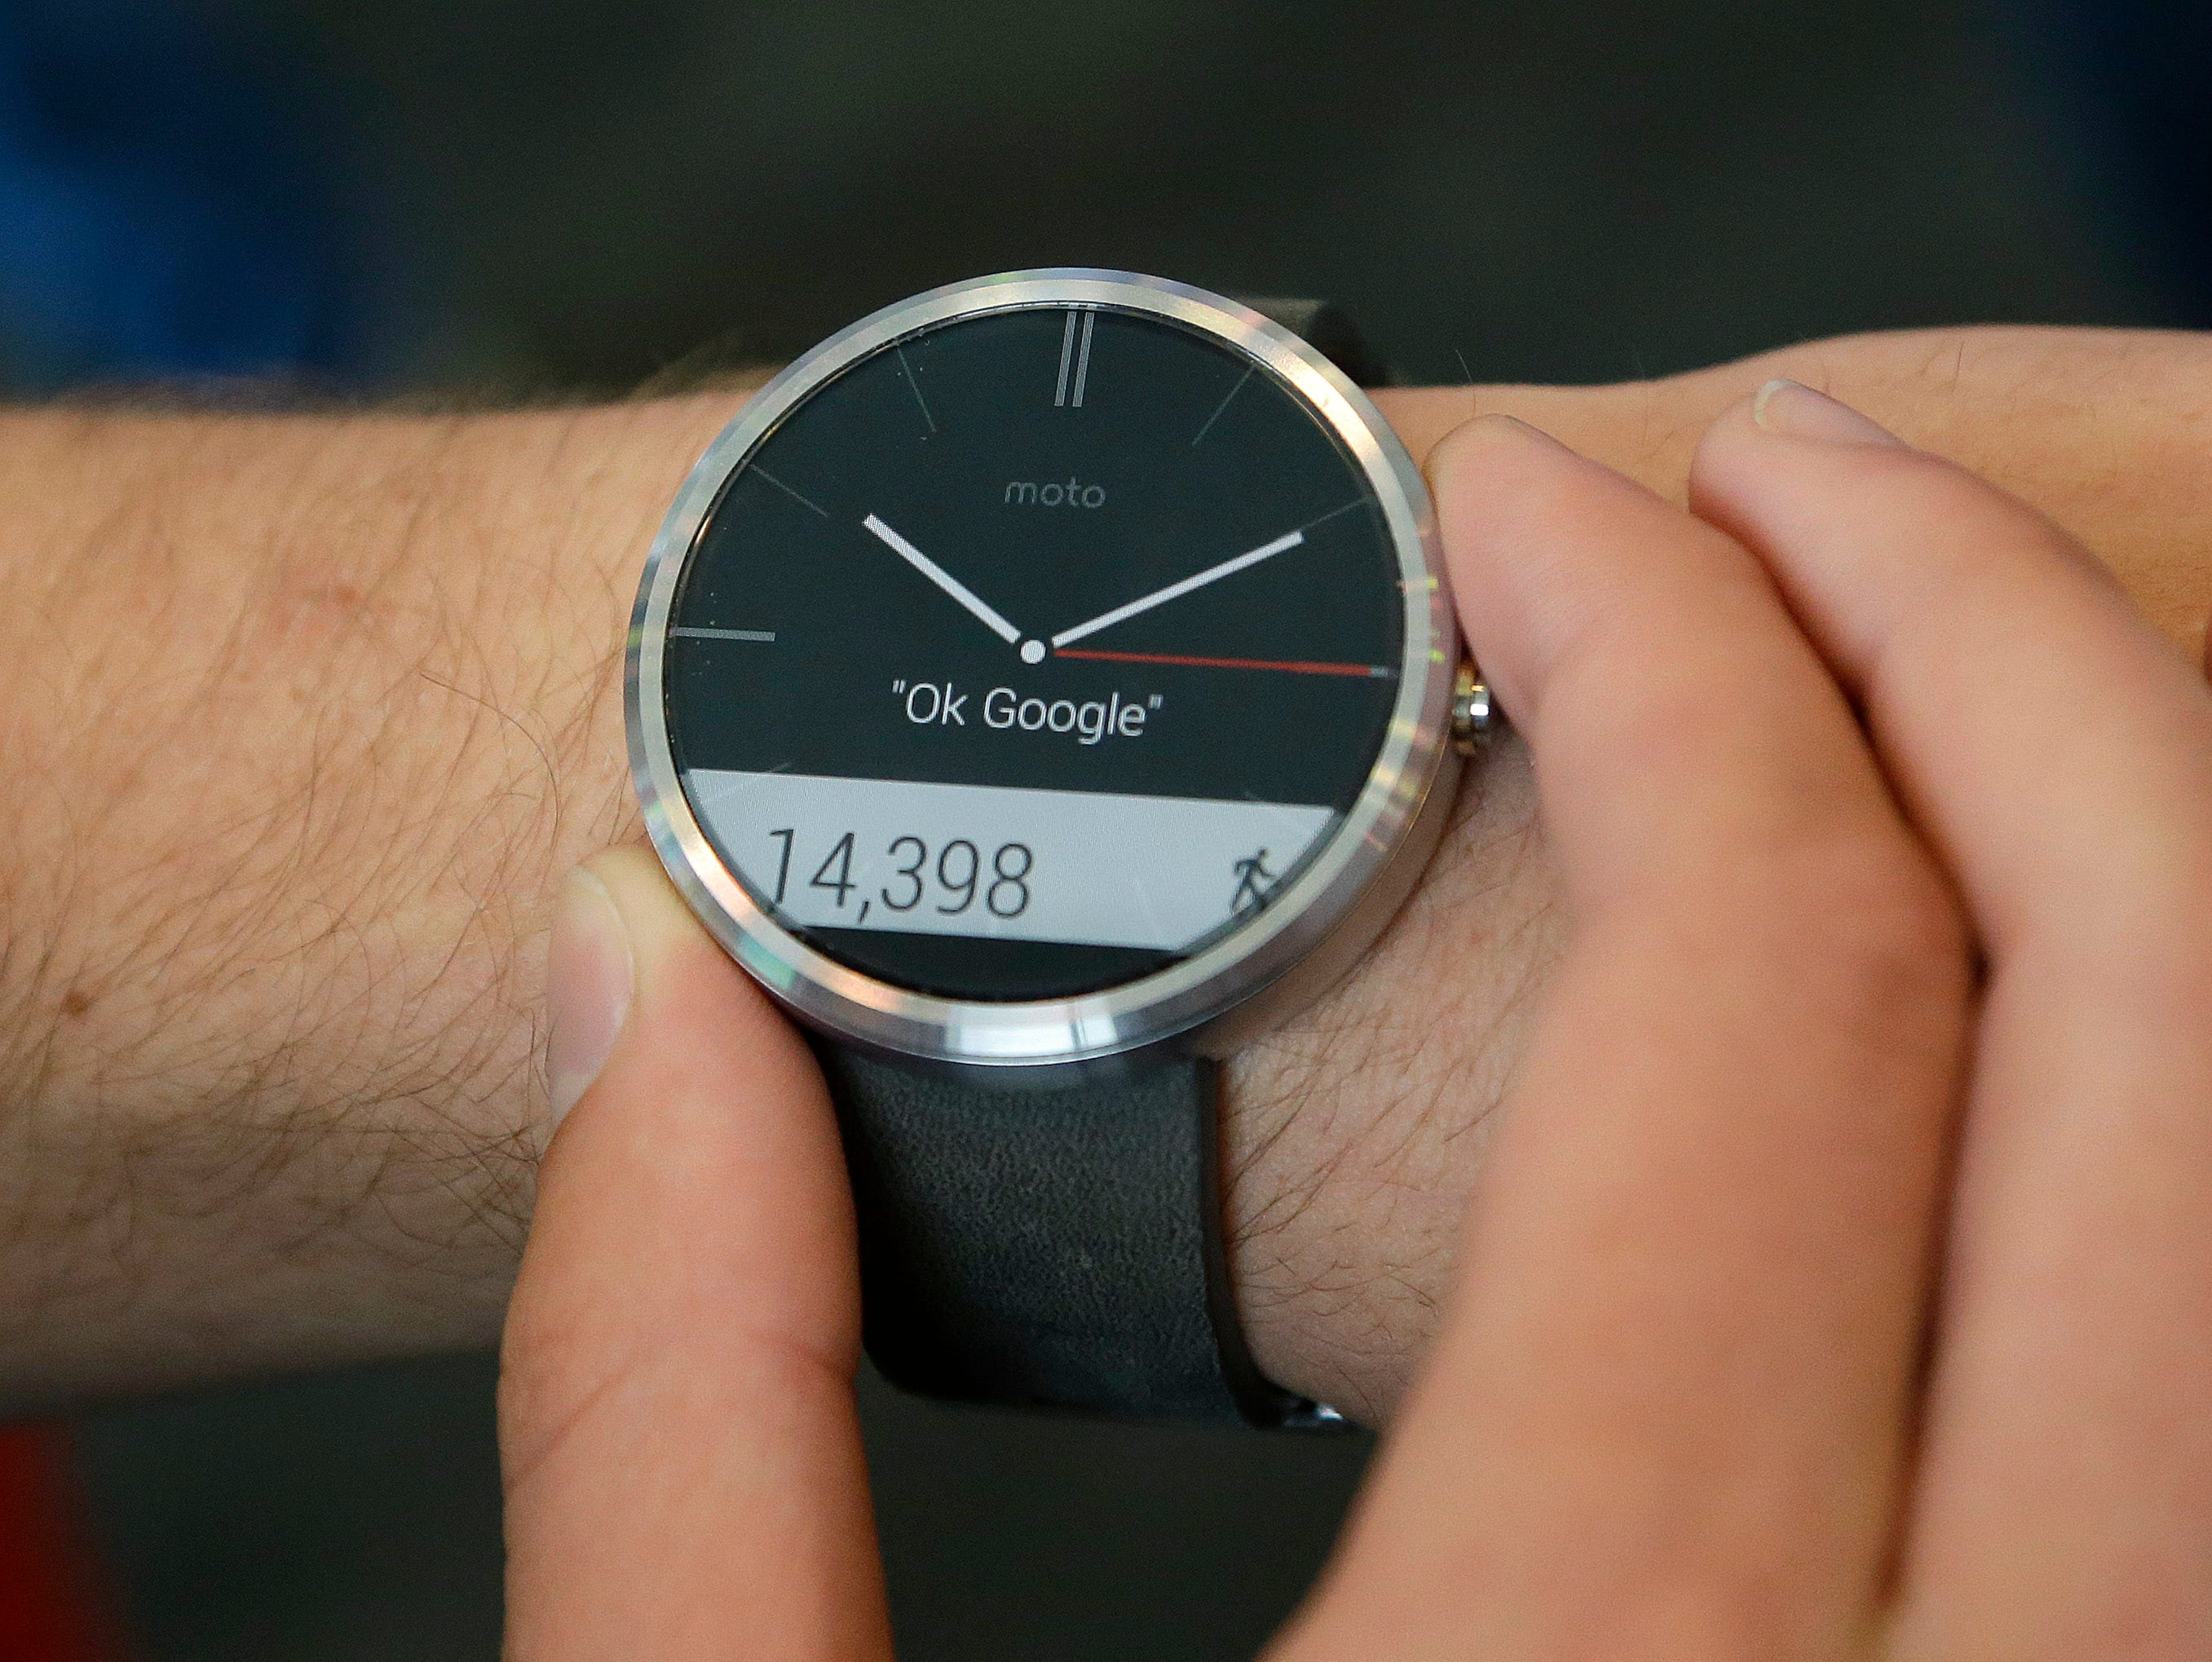 A man wears a Moto 360 by Motorola, an Android Wear smartwatch, on the demo floor at Google I/O 2014 in San Francisco on June 25, 2014.